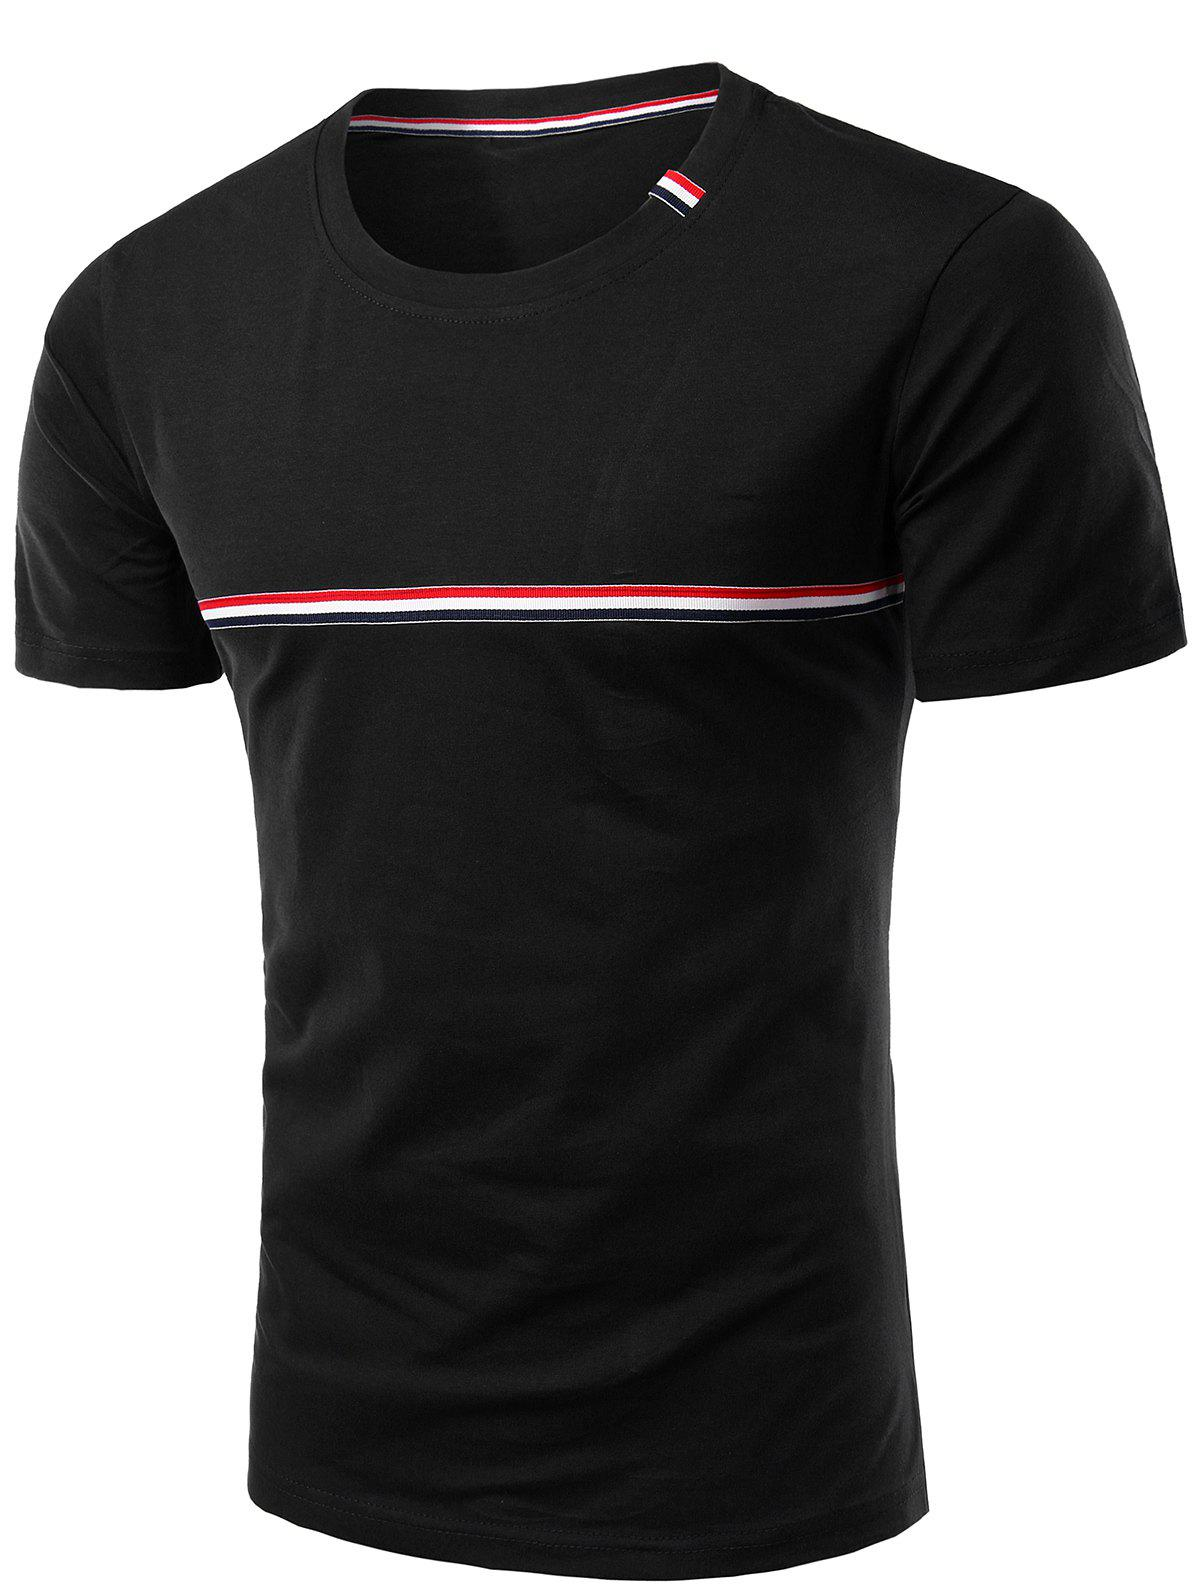 Trendy Round Neck Striped Printed Short Sleeve T-Shirt For Men assorted colors printed striped tassel courtly round neck short sleeve t shirts